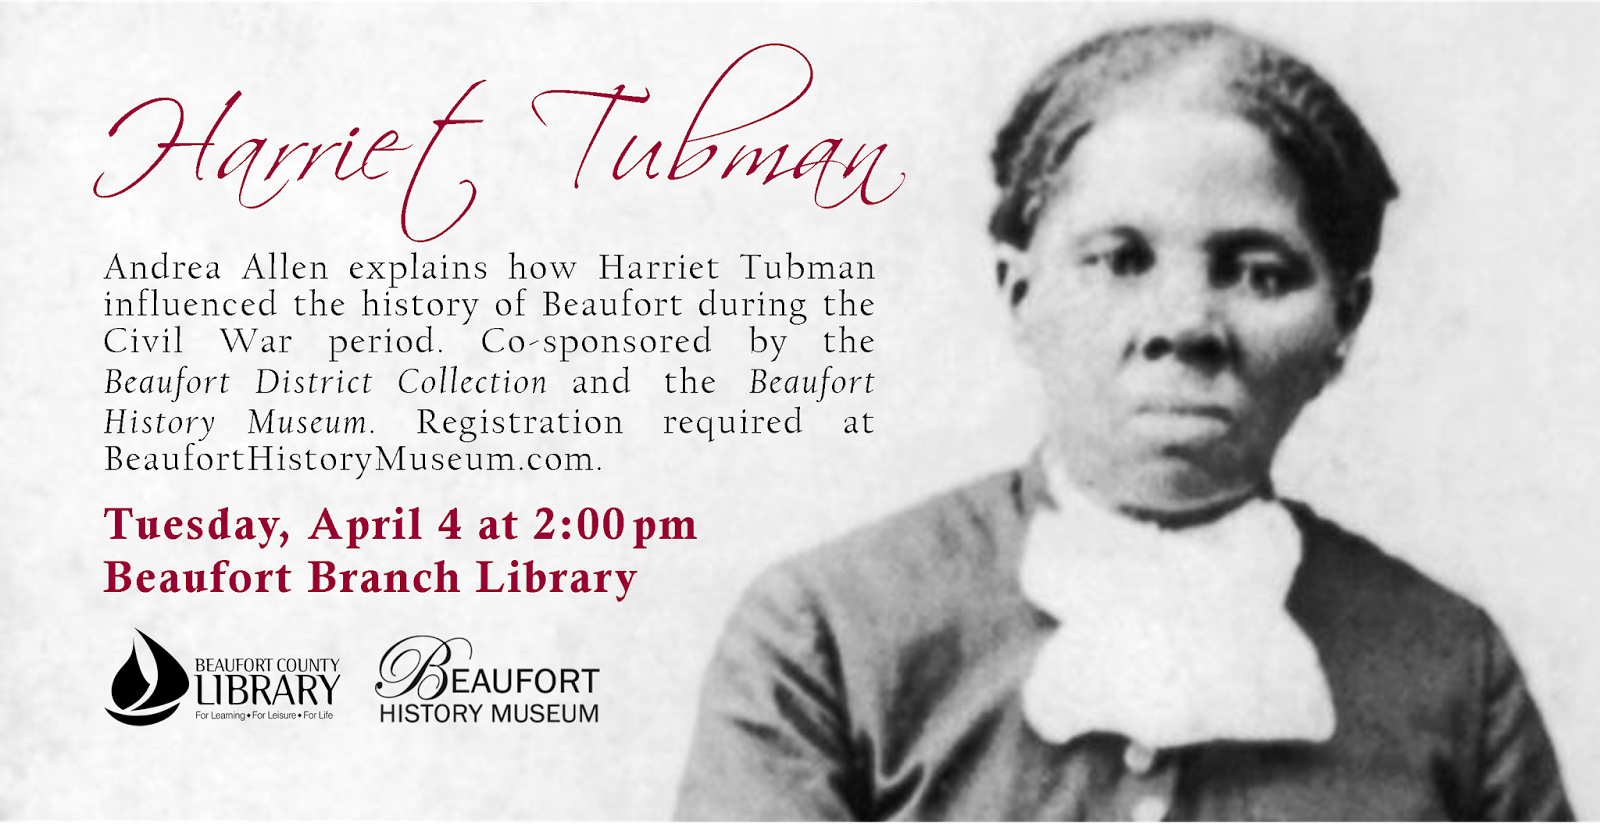 """a biography of the life and literary works of harriet ross tubman Harriet tubman the life and the life stories jean m humez wisconsin studies in autobiography william l andrews, series editor """"humez's long-awaited biography of tubman is the definitive scholarly work""""."""